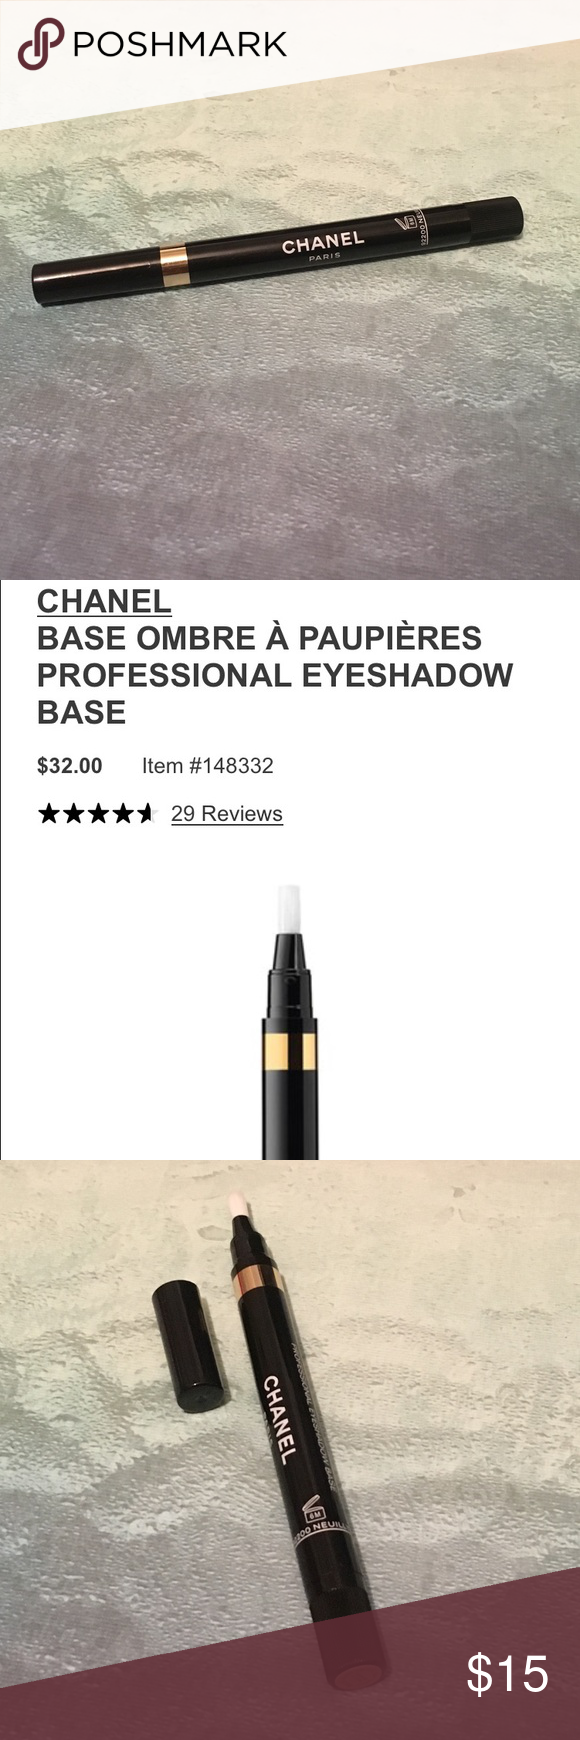 Chanel Eyeshadow Base in Beige NWOB New without box. Color